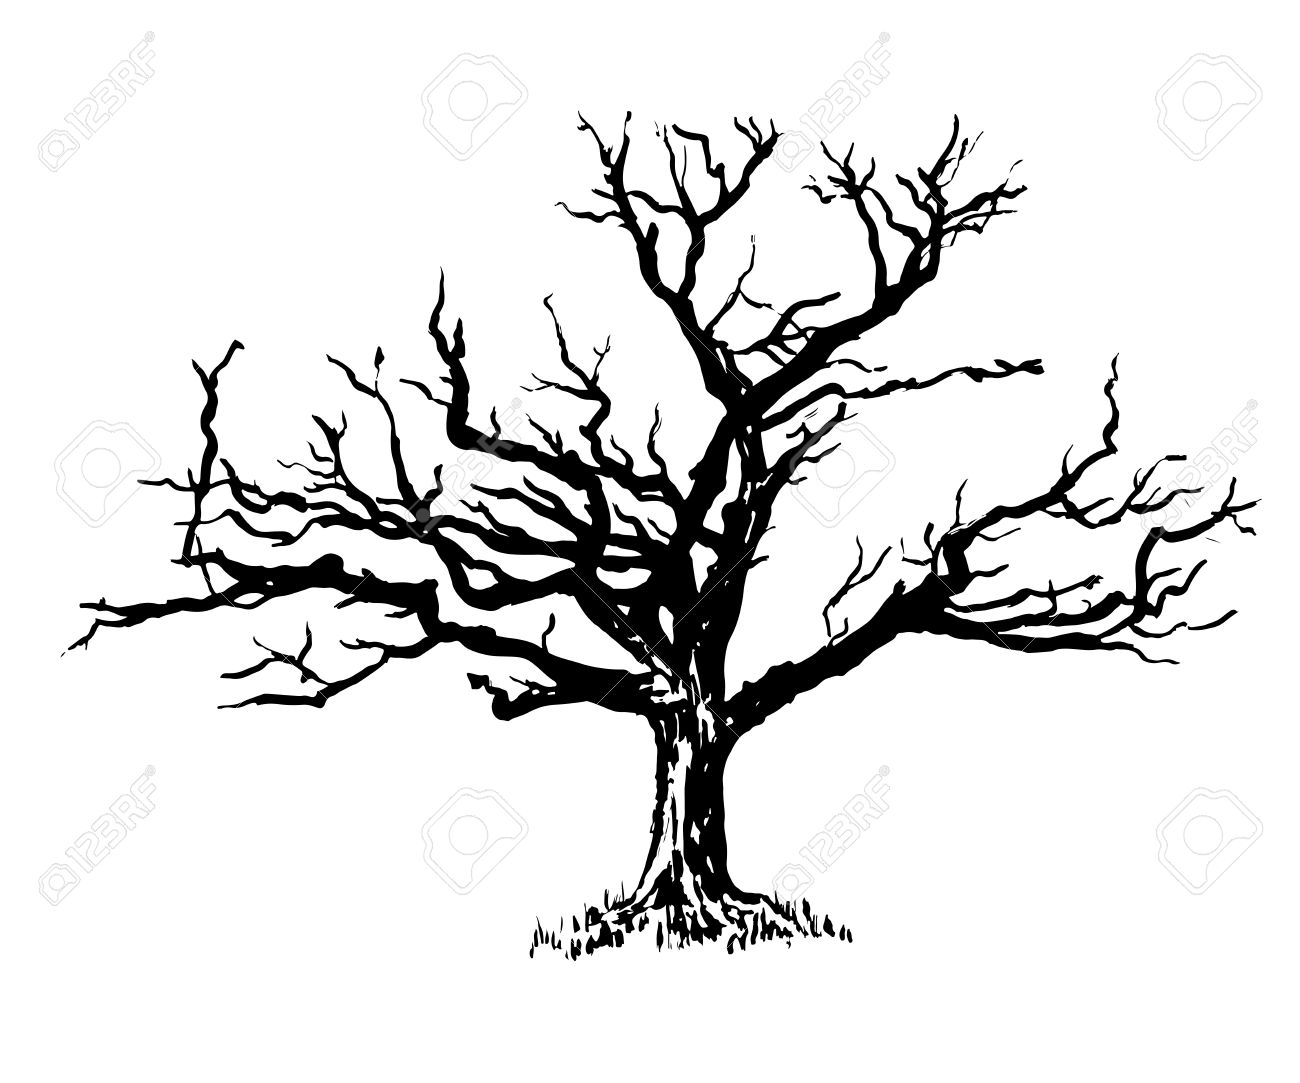 1300x1083 Drawold Sprawling Dry Tree Graphic Illustration Royalty Free